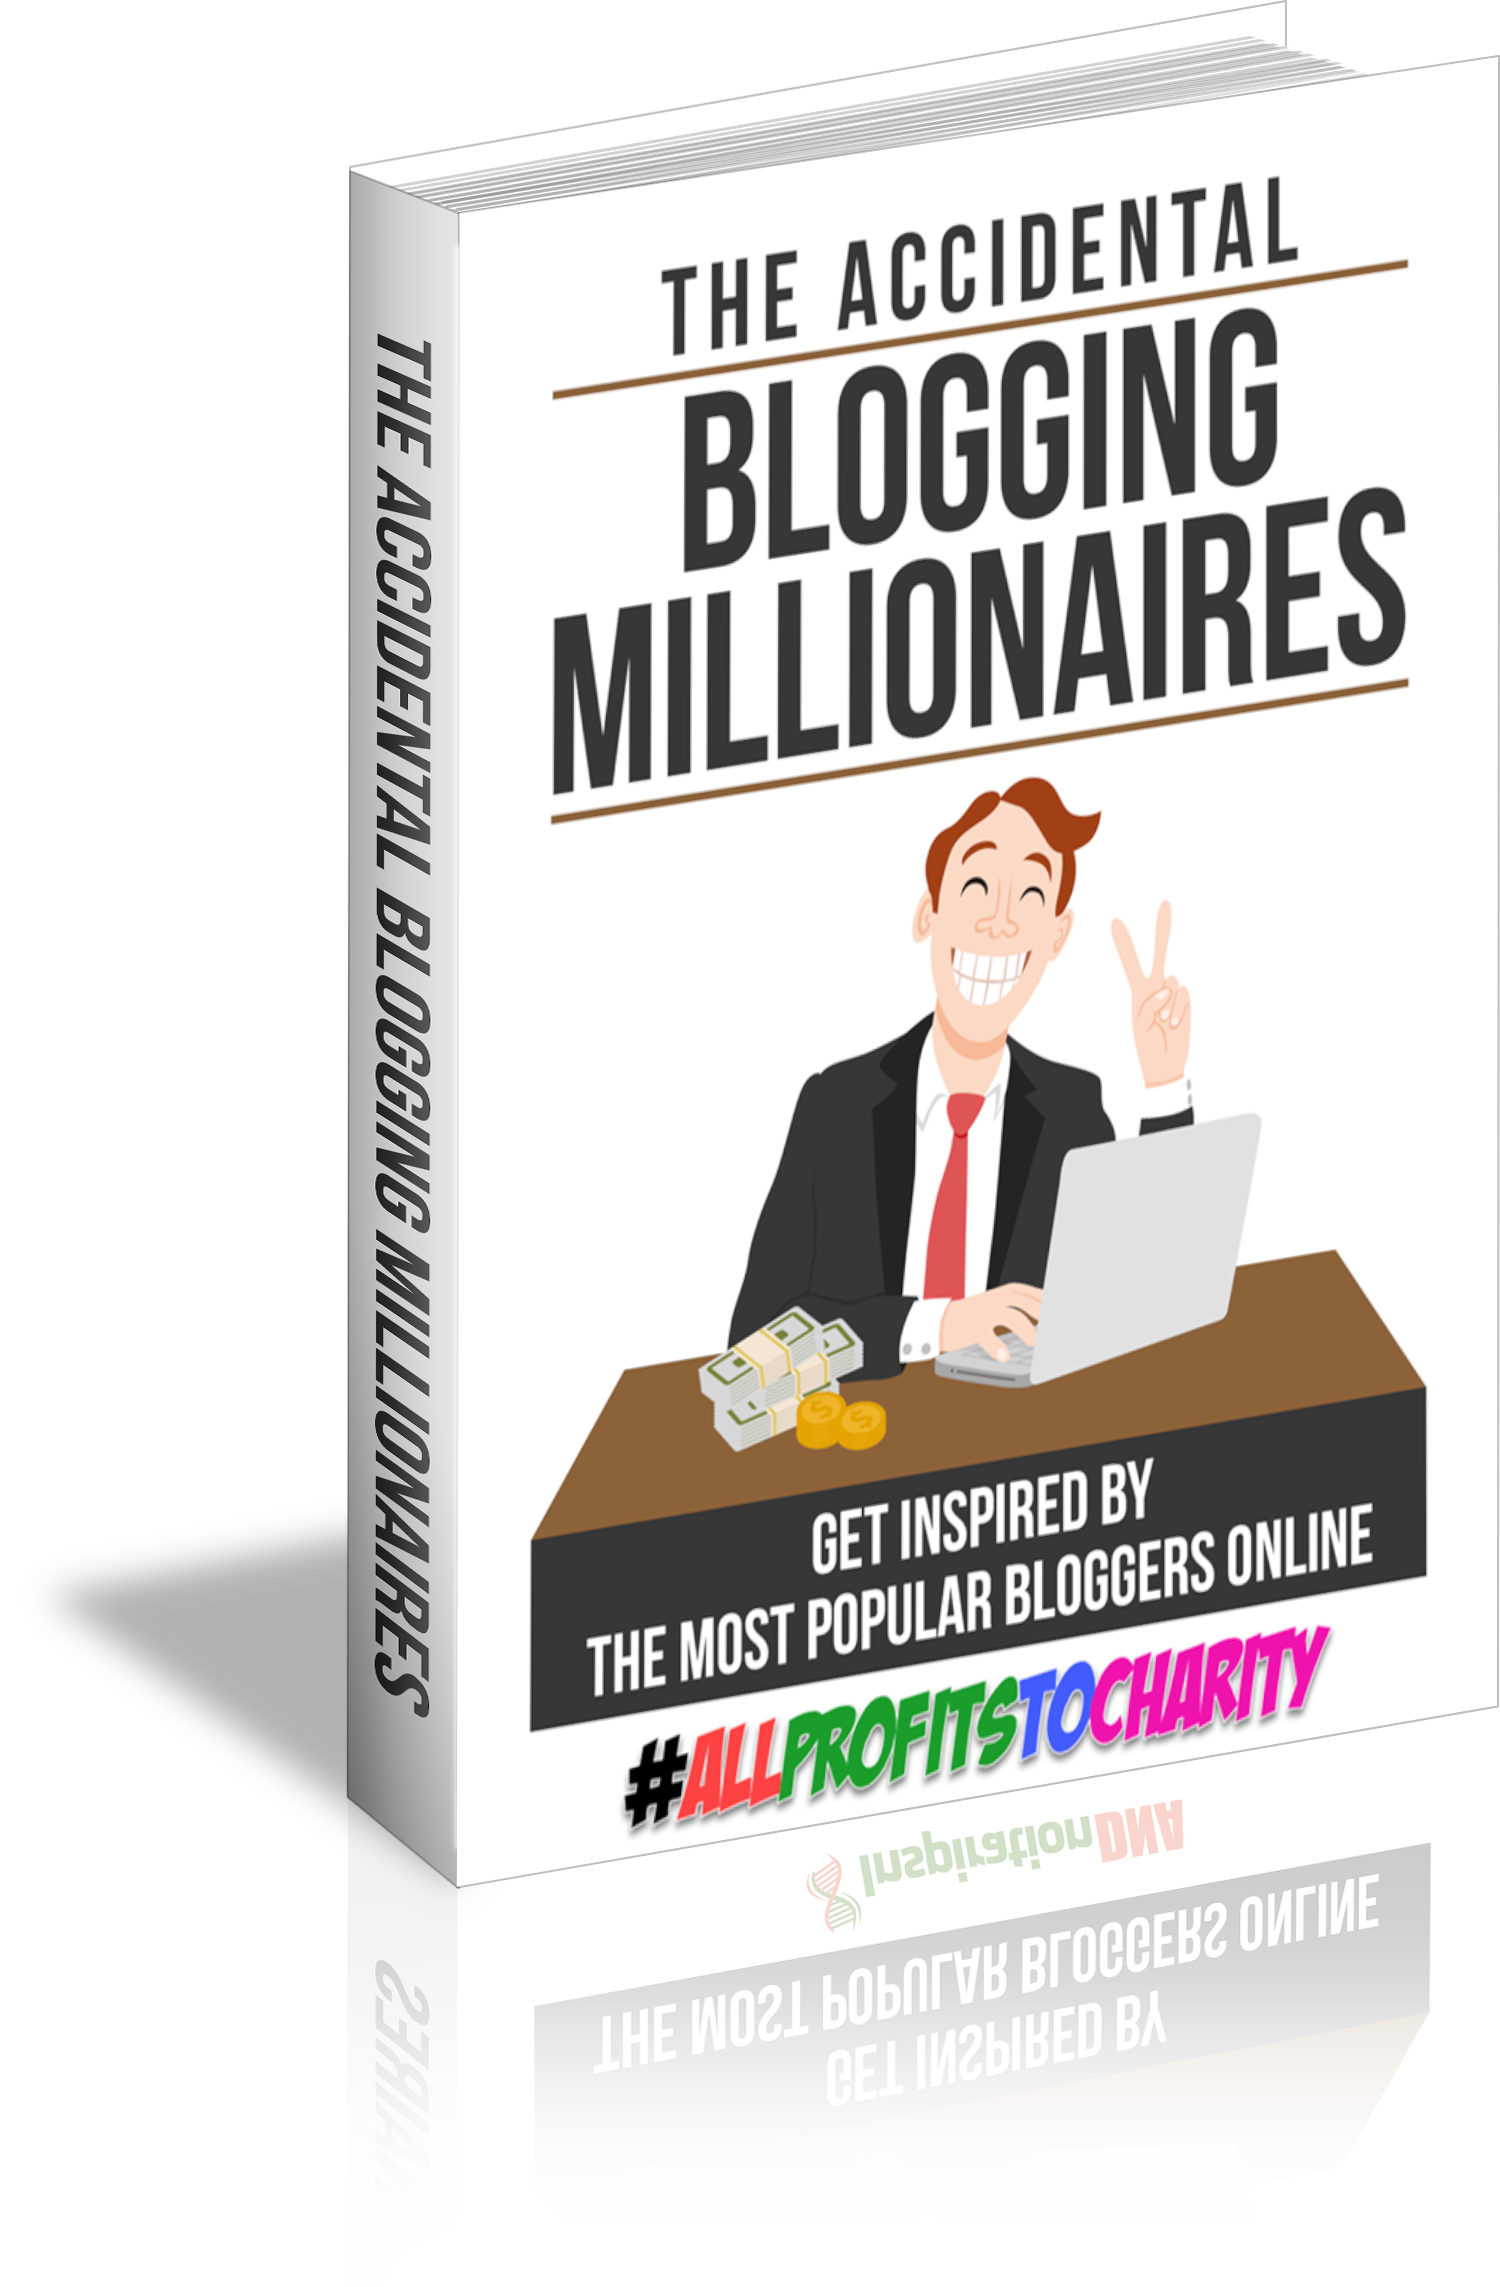 The Accidental Blogging Millionaires cover